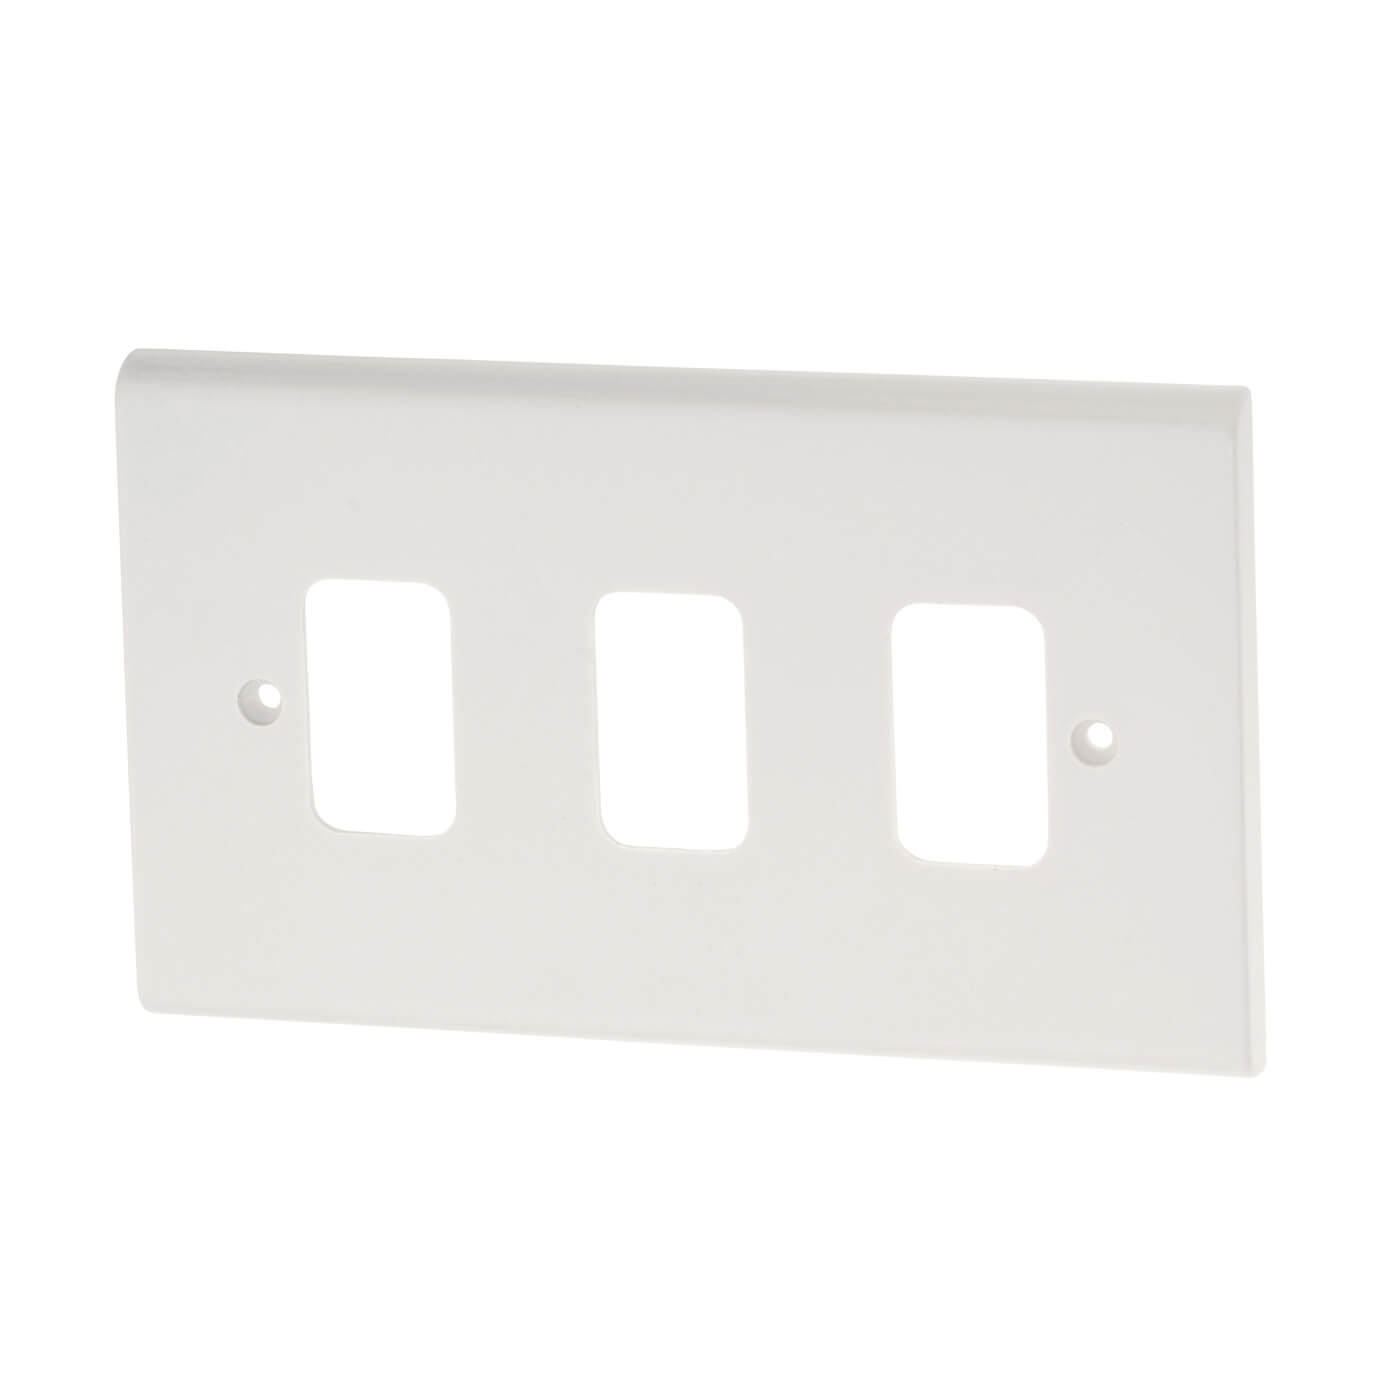 Deta 3 Gang Grid Front Plate White Electricaldirect 2 Way Switch Twin And Earth Back